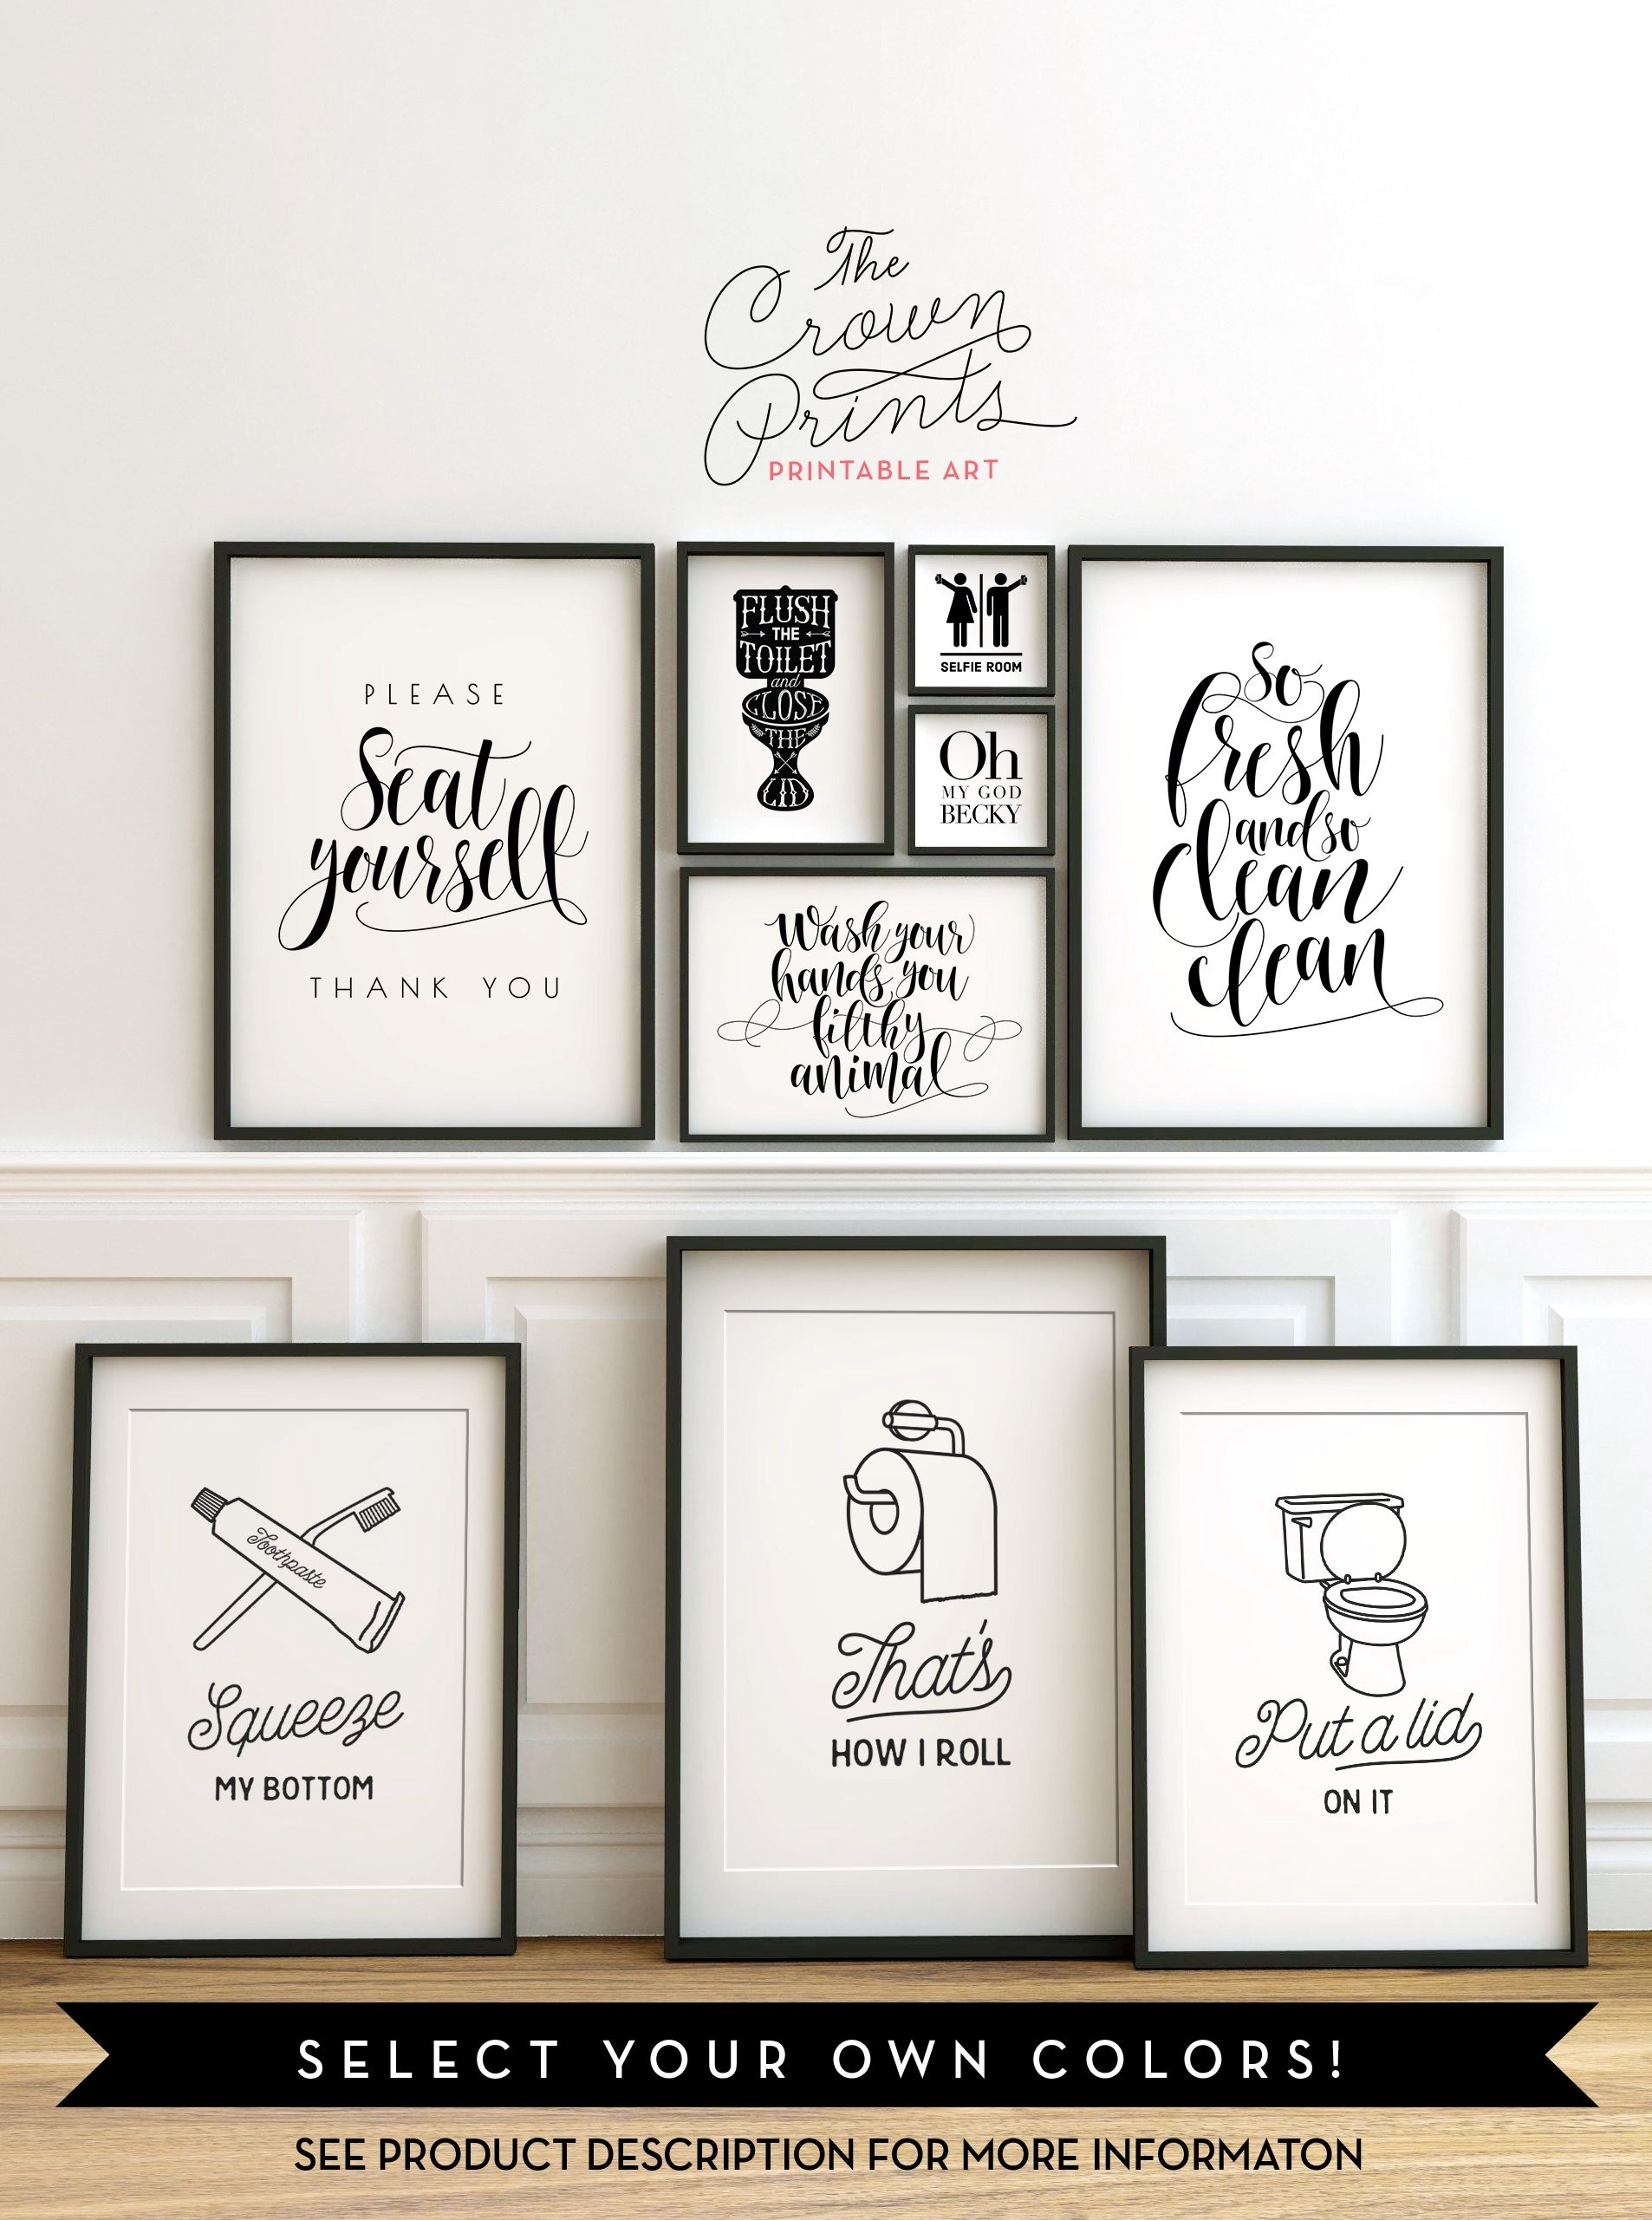 Printable Bathroom Wall Art From The Crown Prints On Etsy – Lots Of Within Current Bathroom Wall Art (Gallery 2 of 15)